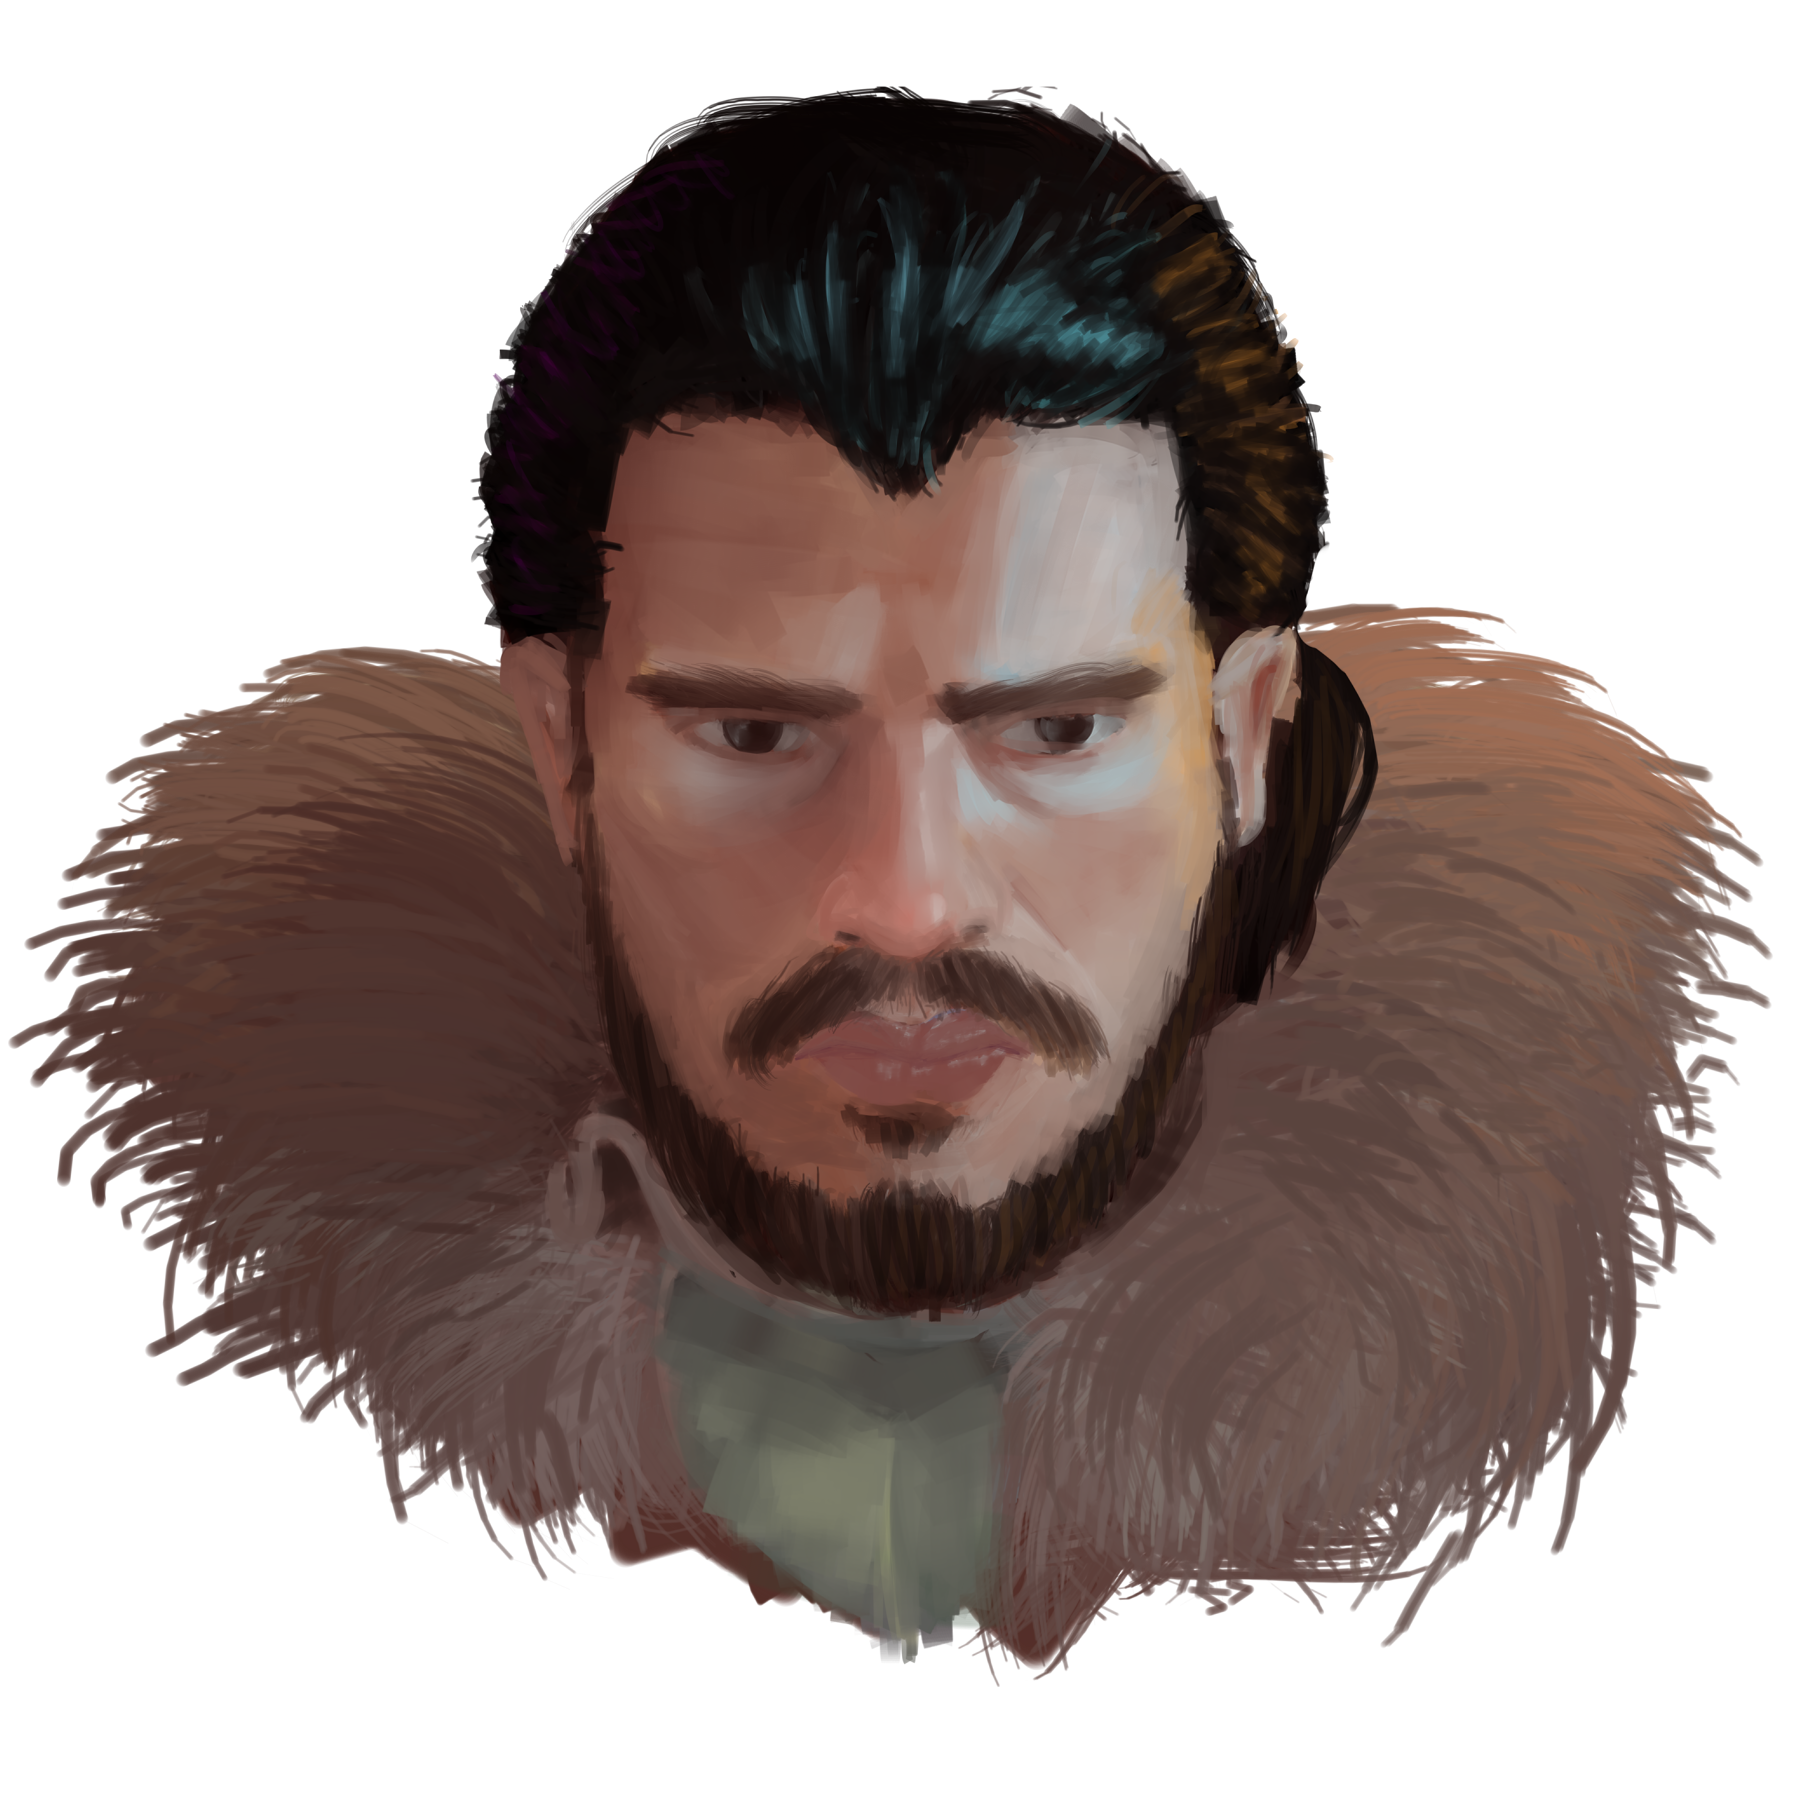 Just Another Jon Snow Painting